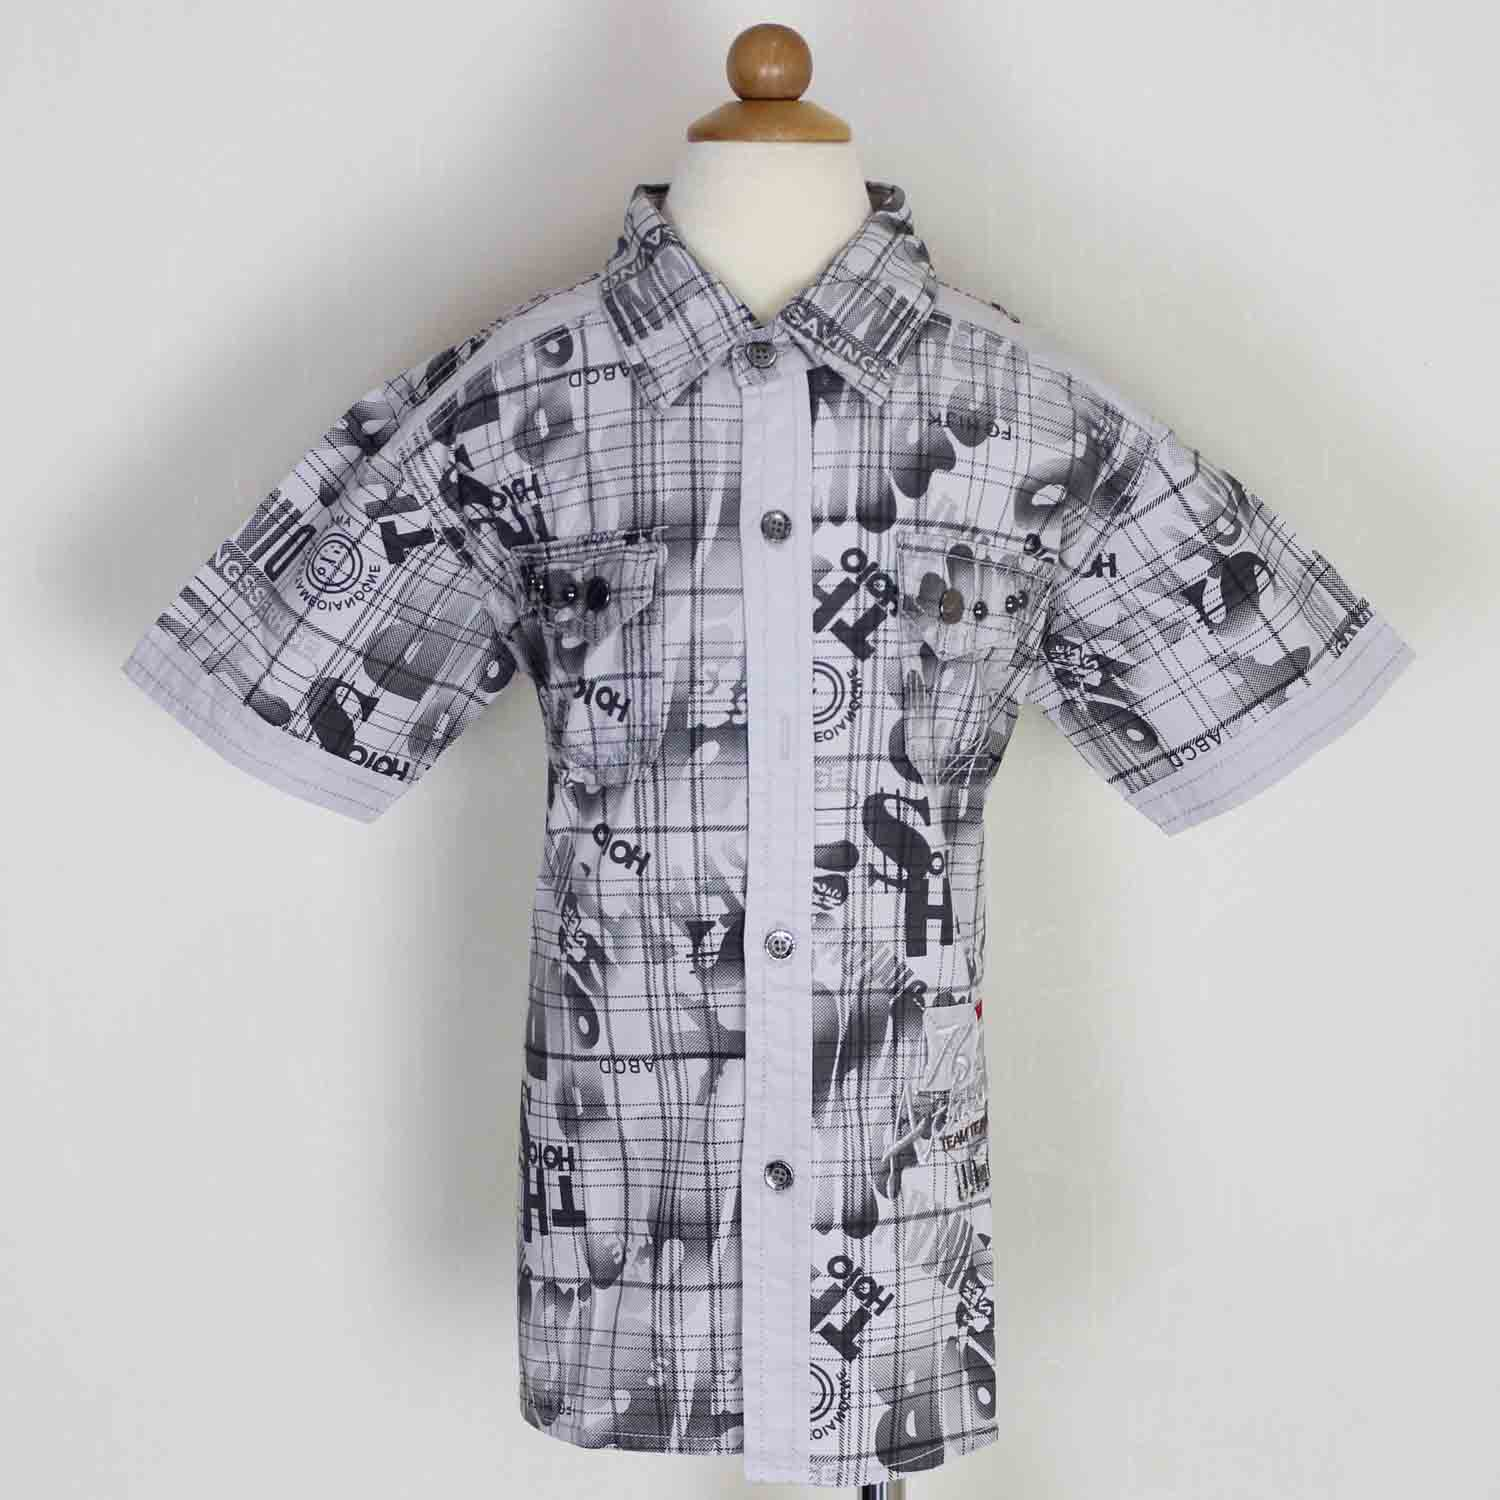 High quality boy's cotton shirt for stocklot